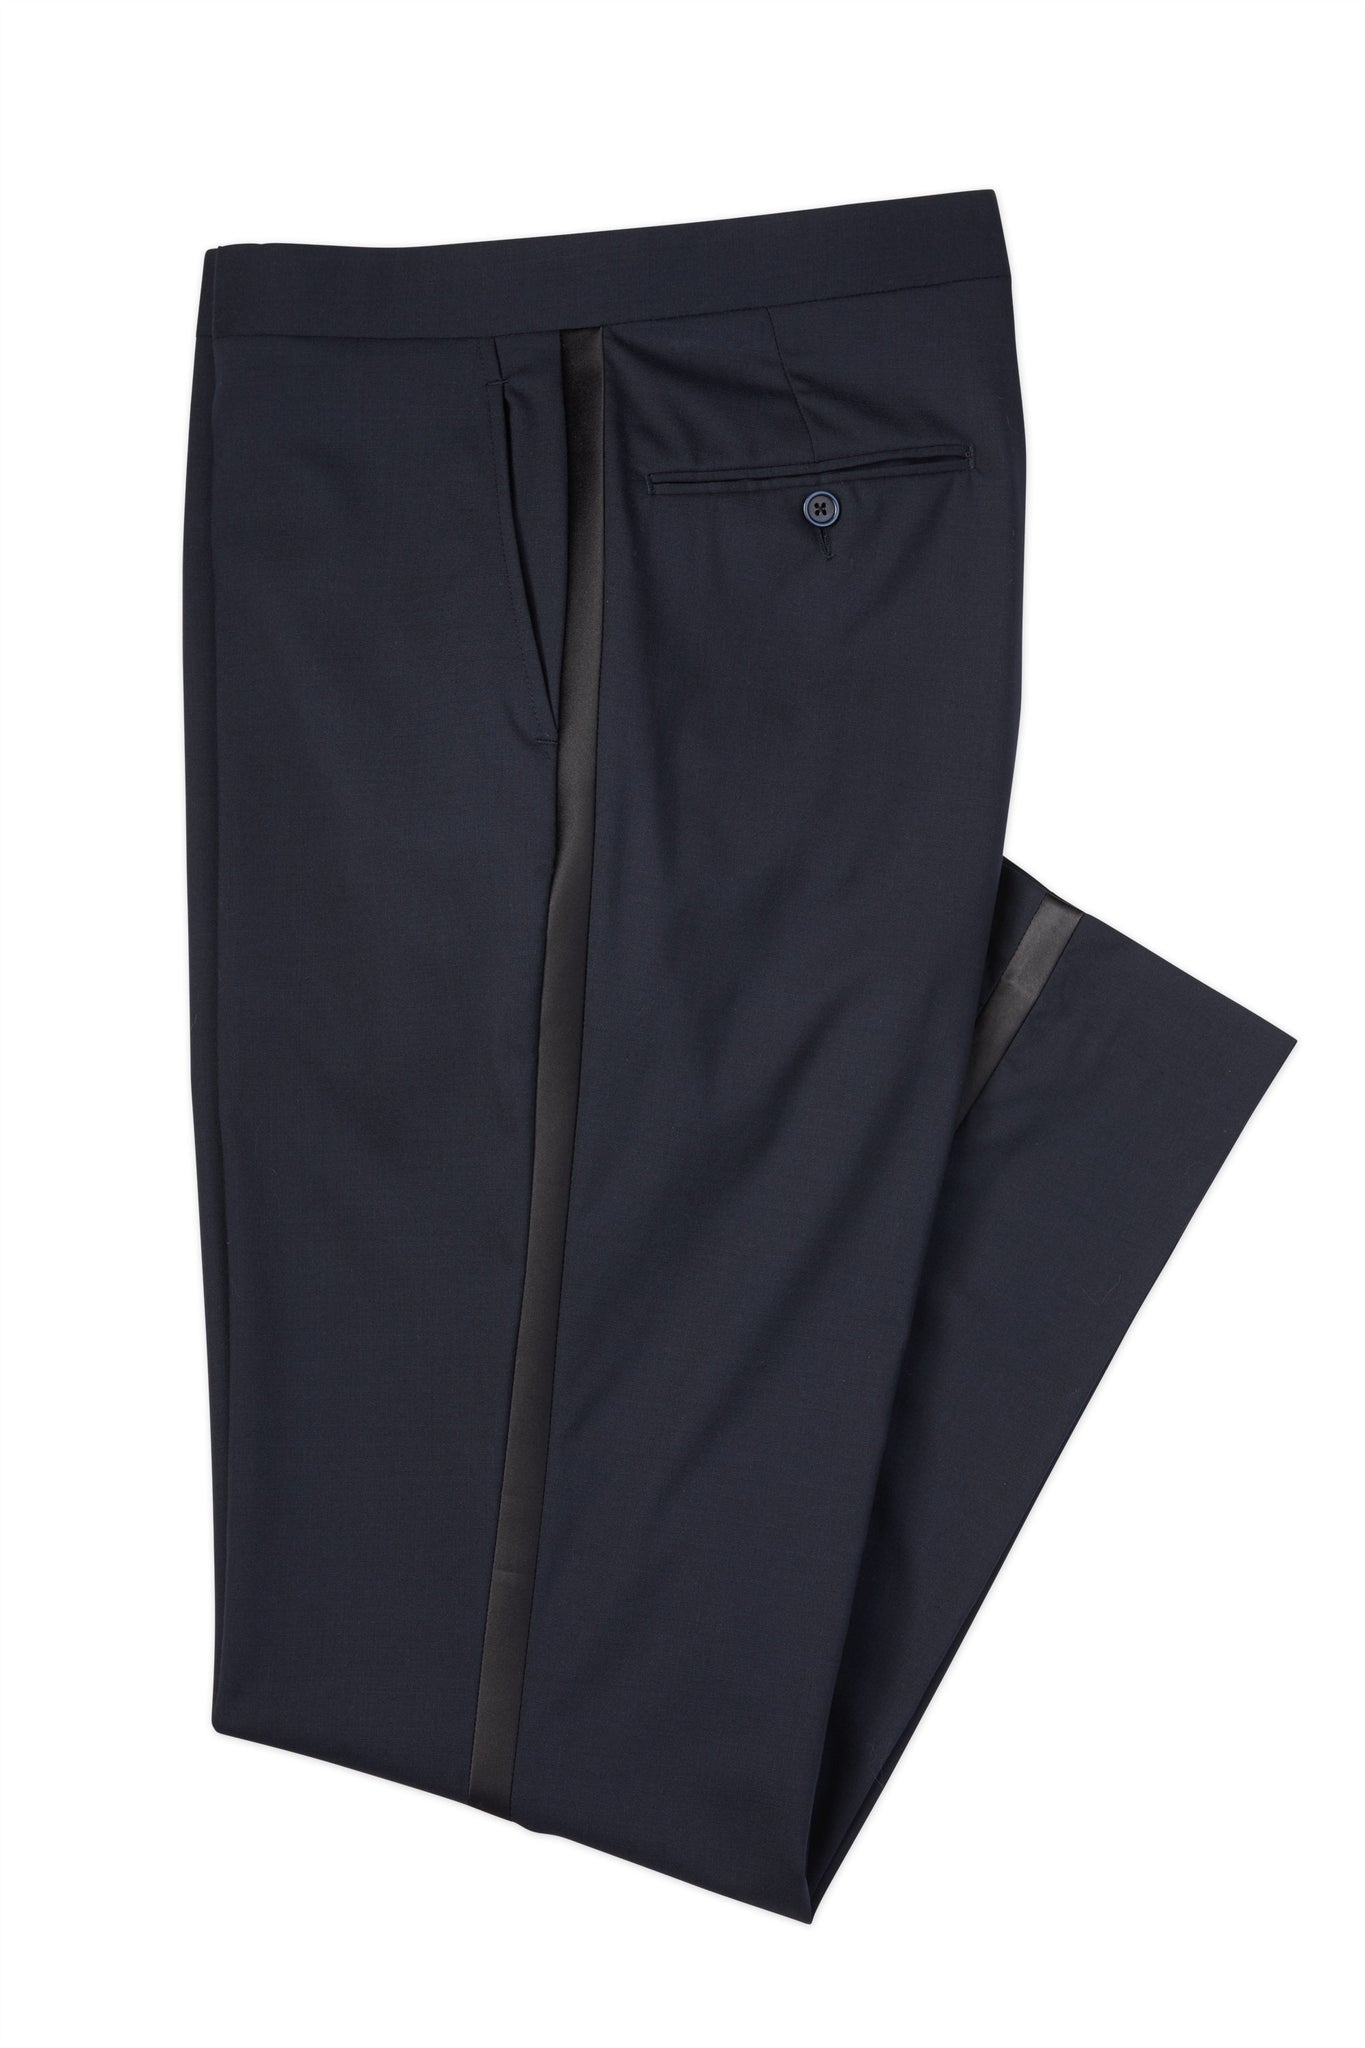 Modern Fit Navy Super 110's Worsted Wool Performance Tuxedo Pant -  Hardwick.com